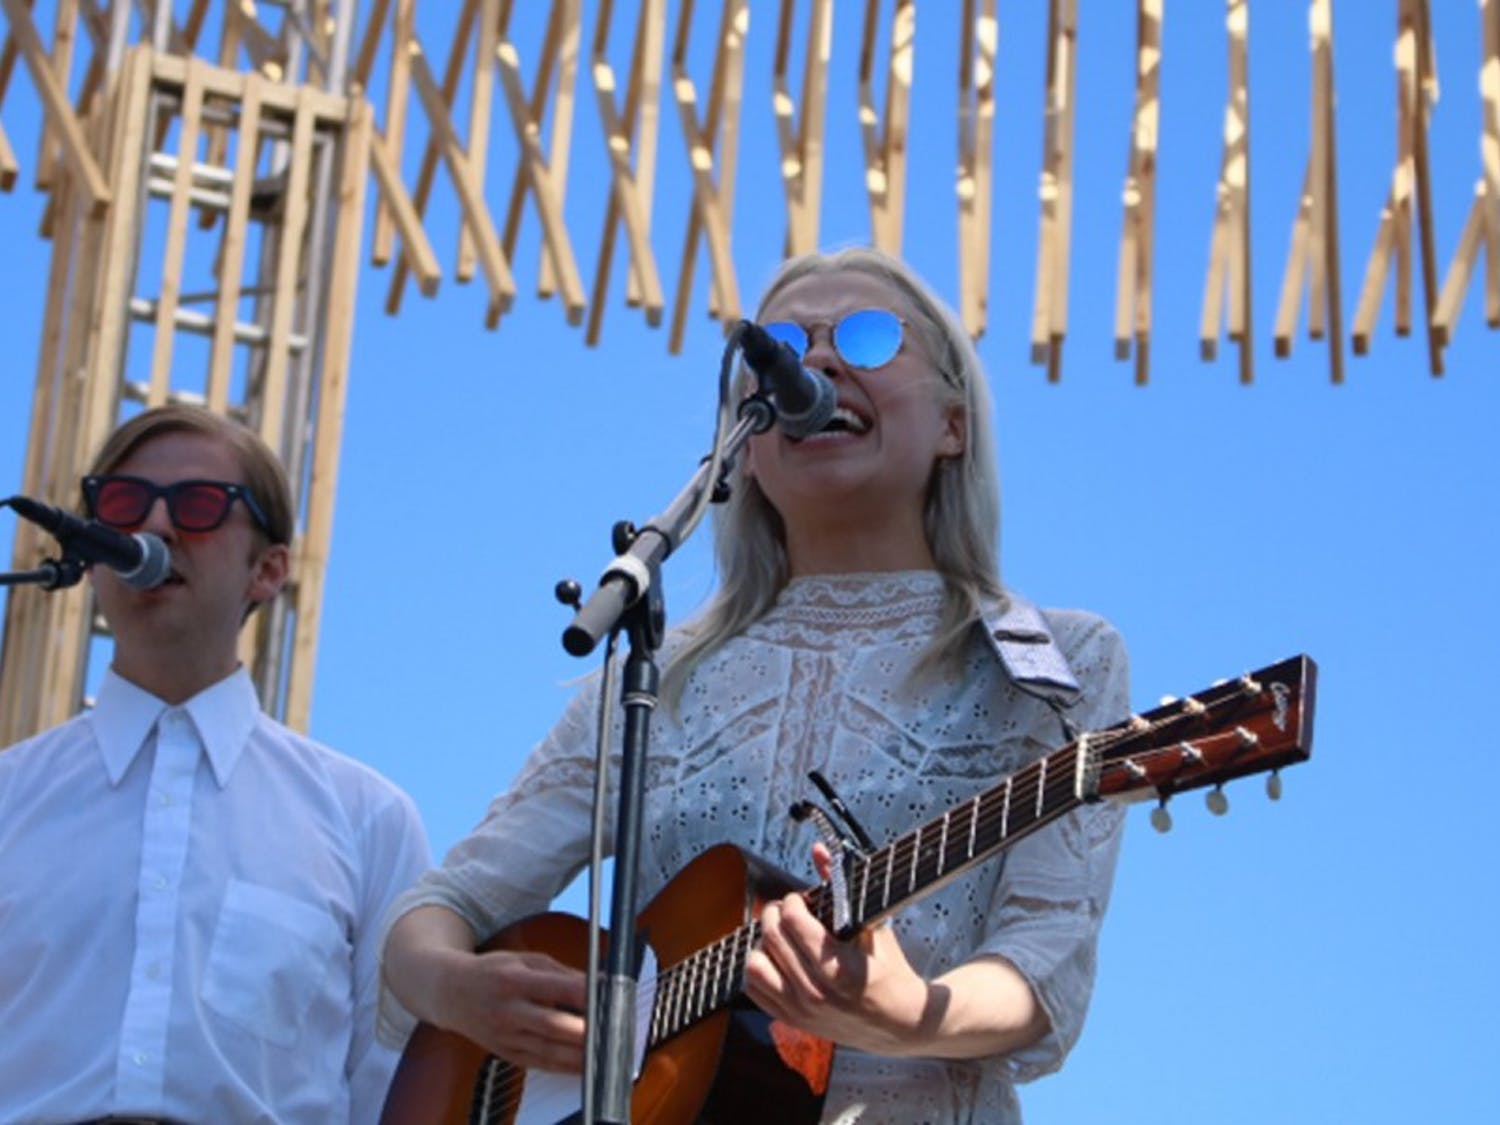 Phoebe Bridgers brought out Christian Lee Hutson for her performance on Saturday at the brand-new circular stage.